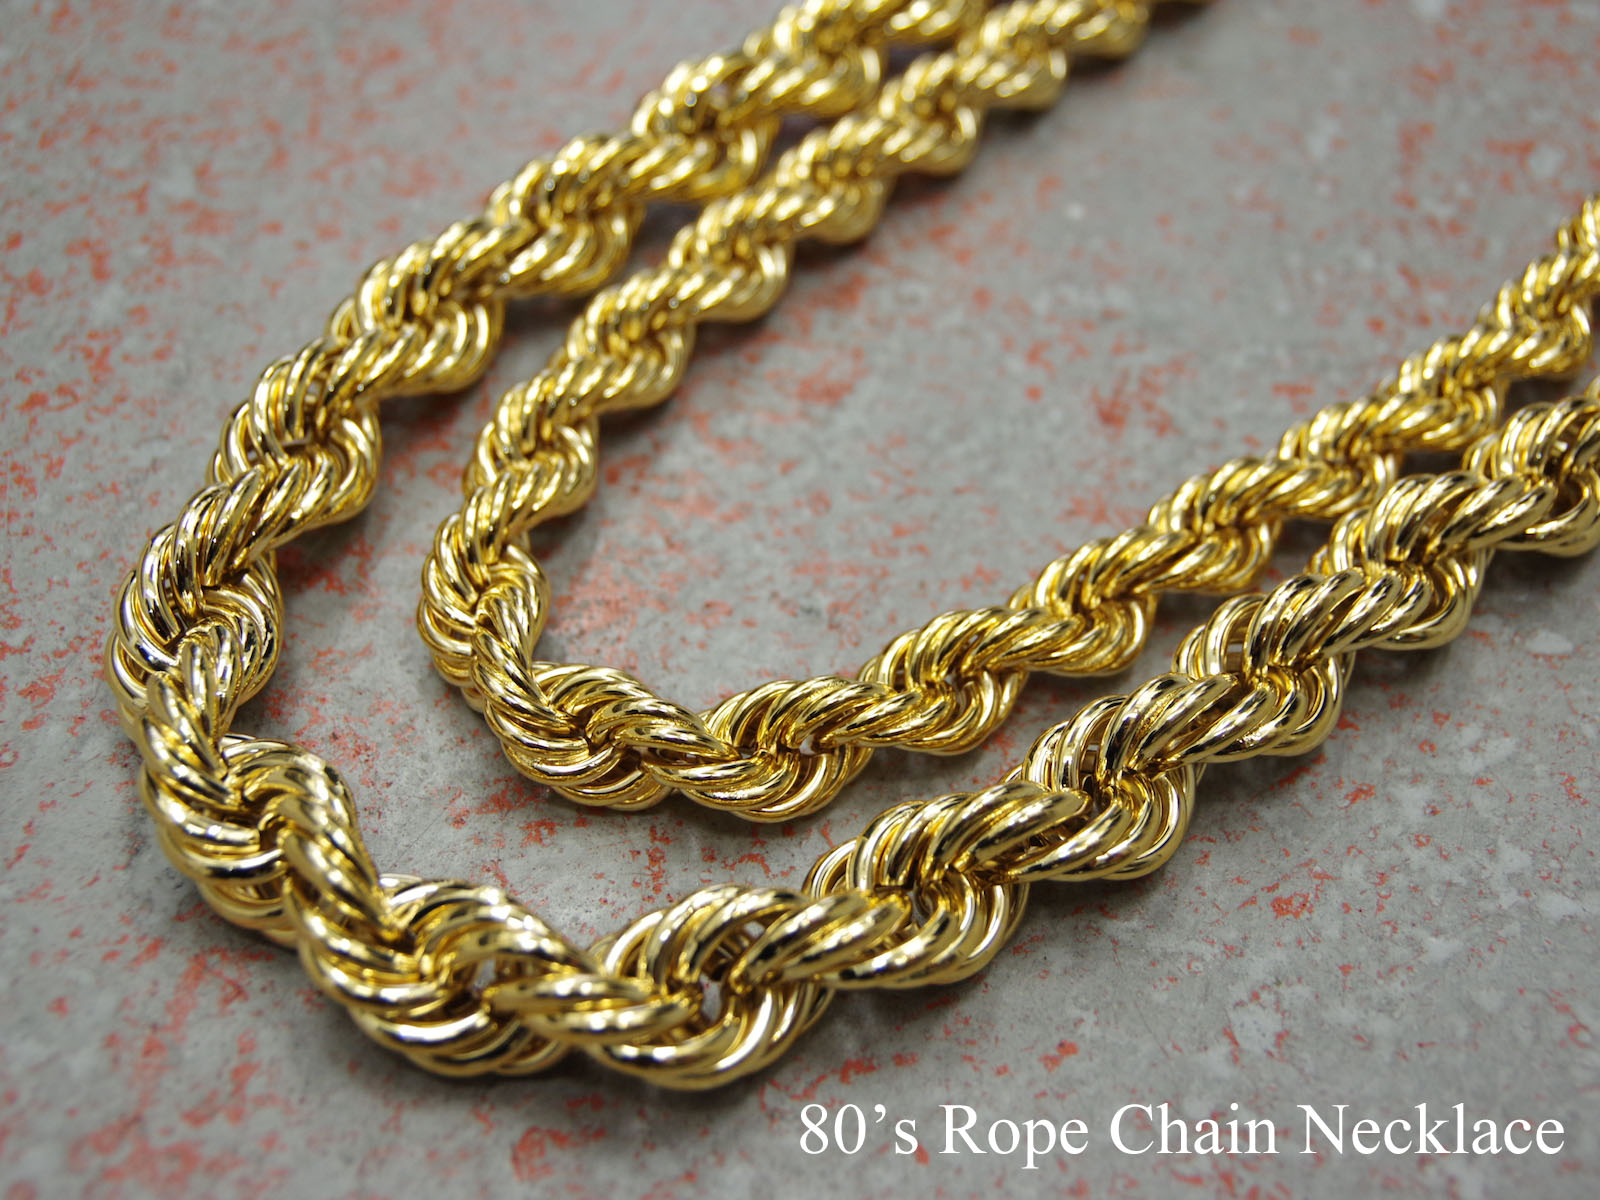 80's Rope Chain Necklace / ロープ・チェーン・ネックレス